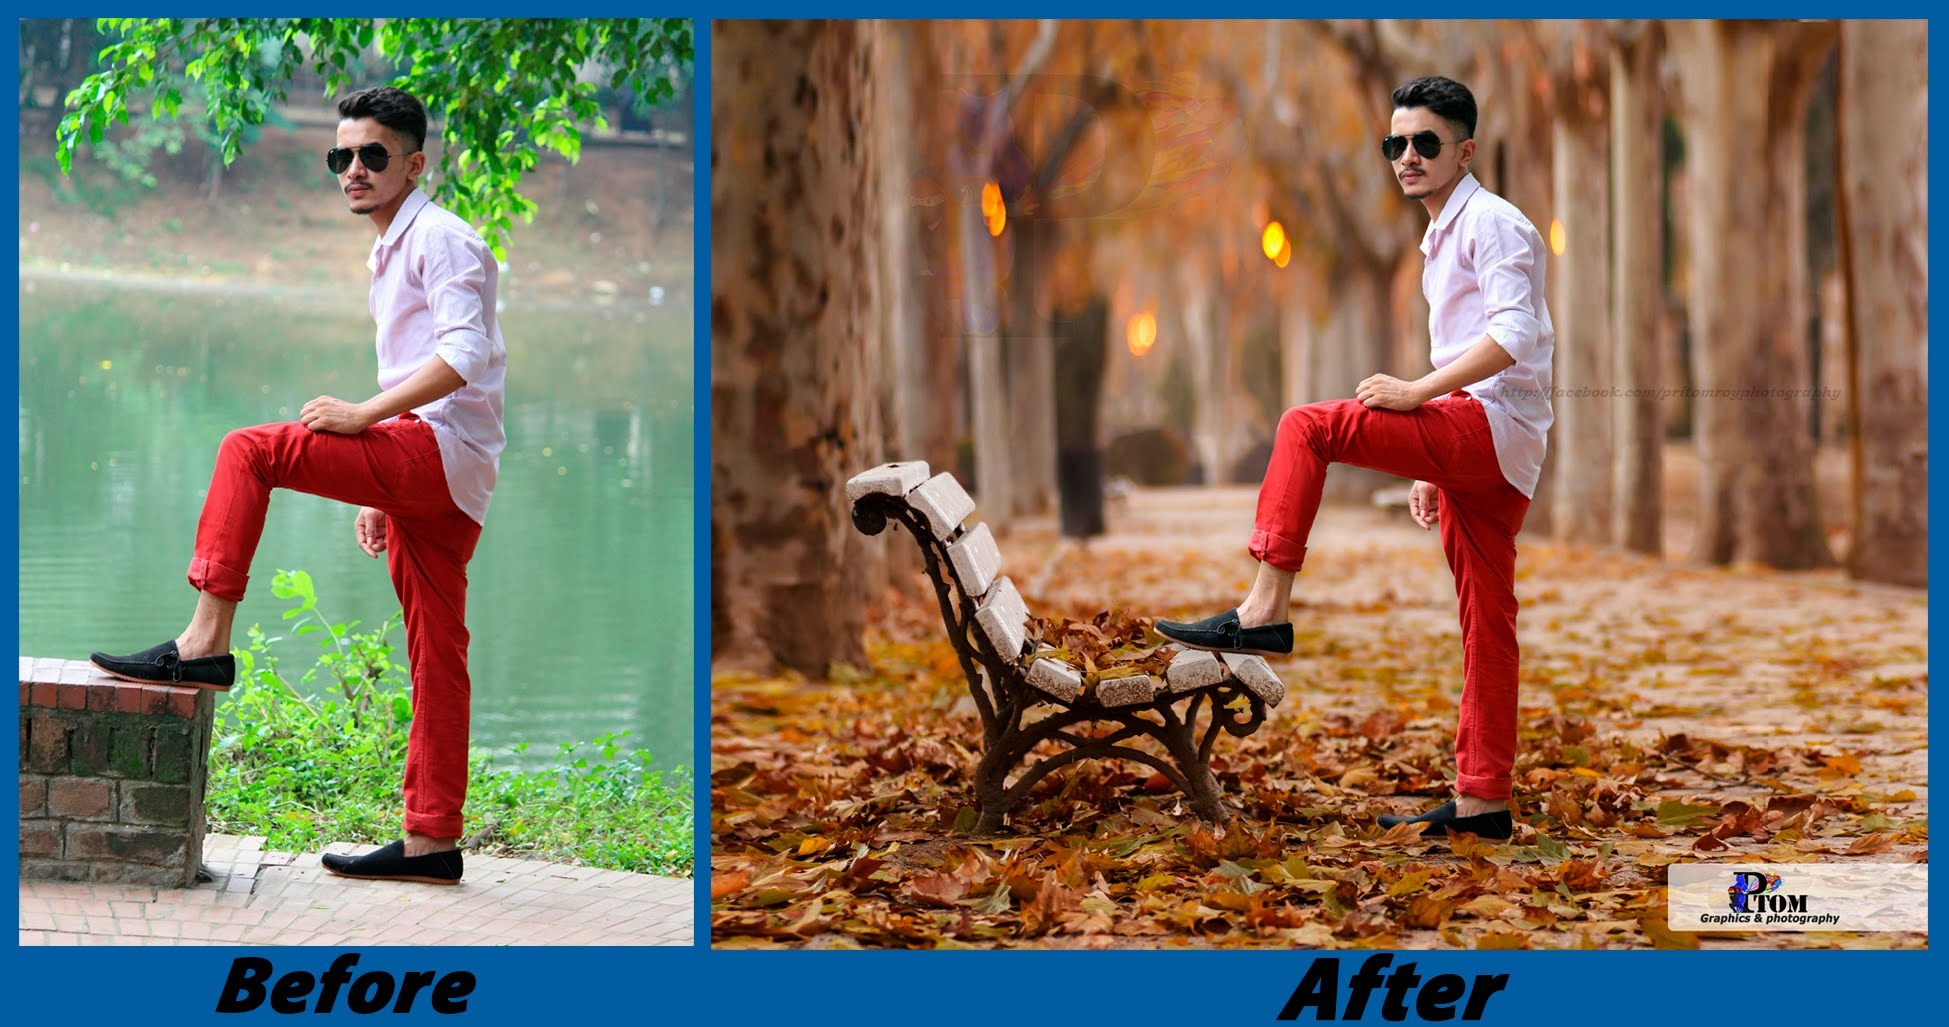 Editing page 24 digital photography news photoshop cc background change and photo retouch tutorial august 2016 baditri Choice Image